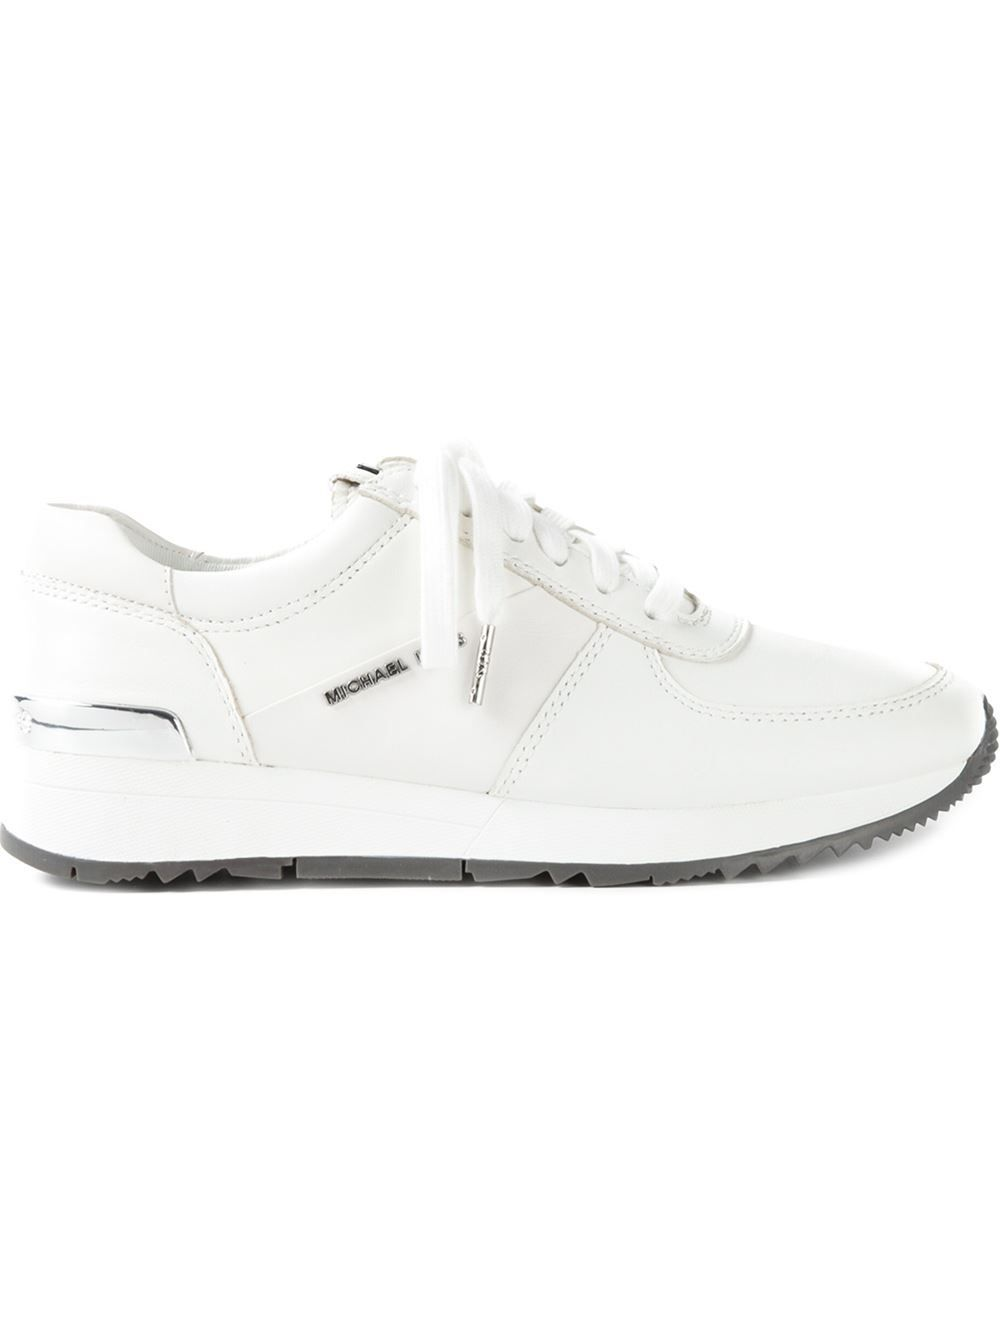 Michael Kors  Allie  sneakers  0d795eccec2